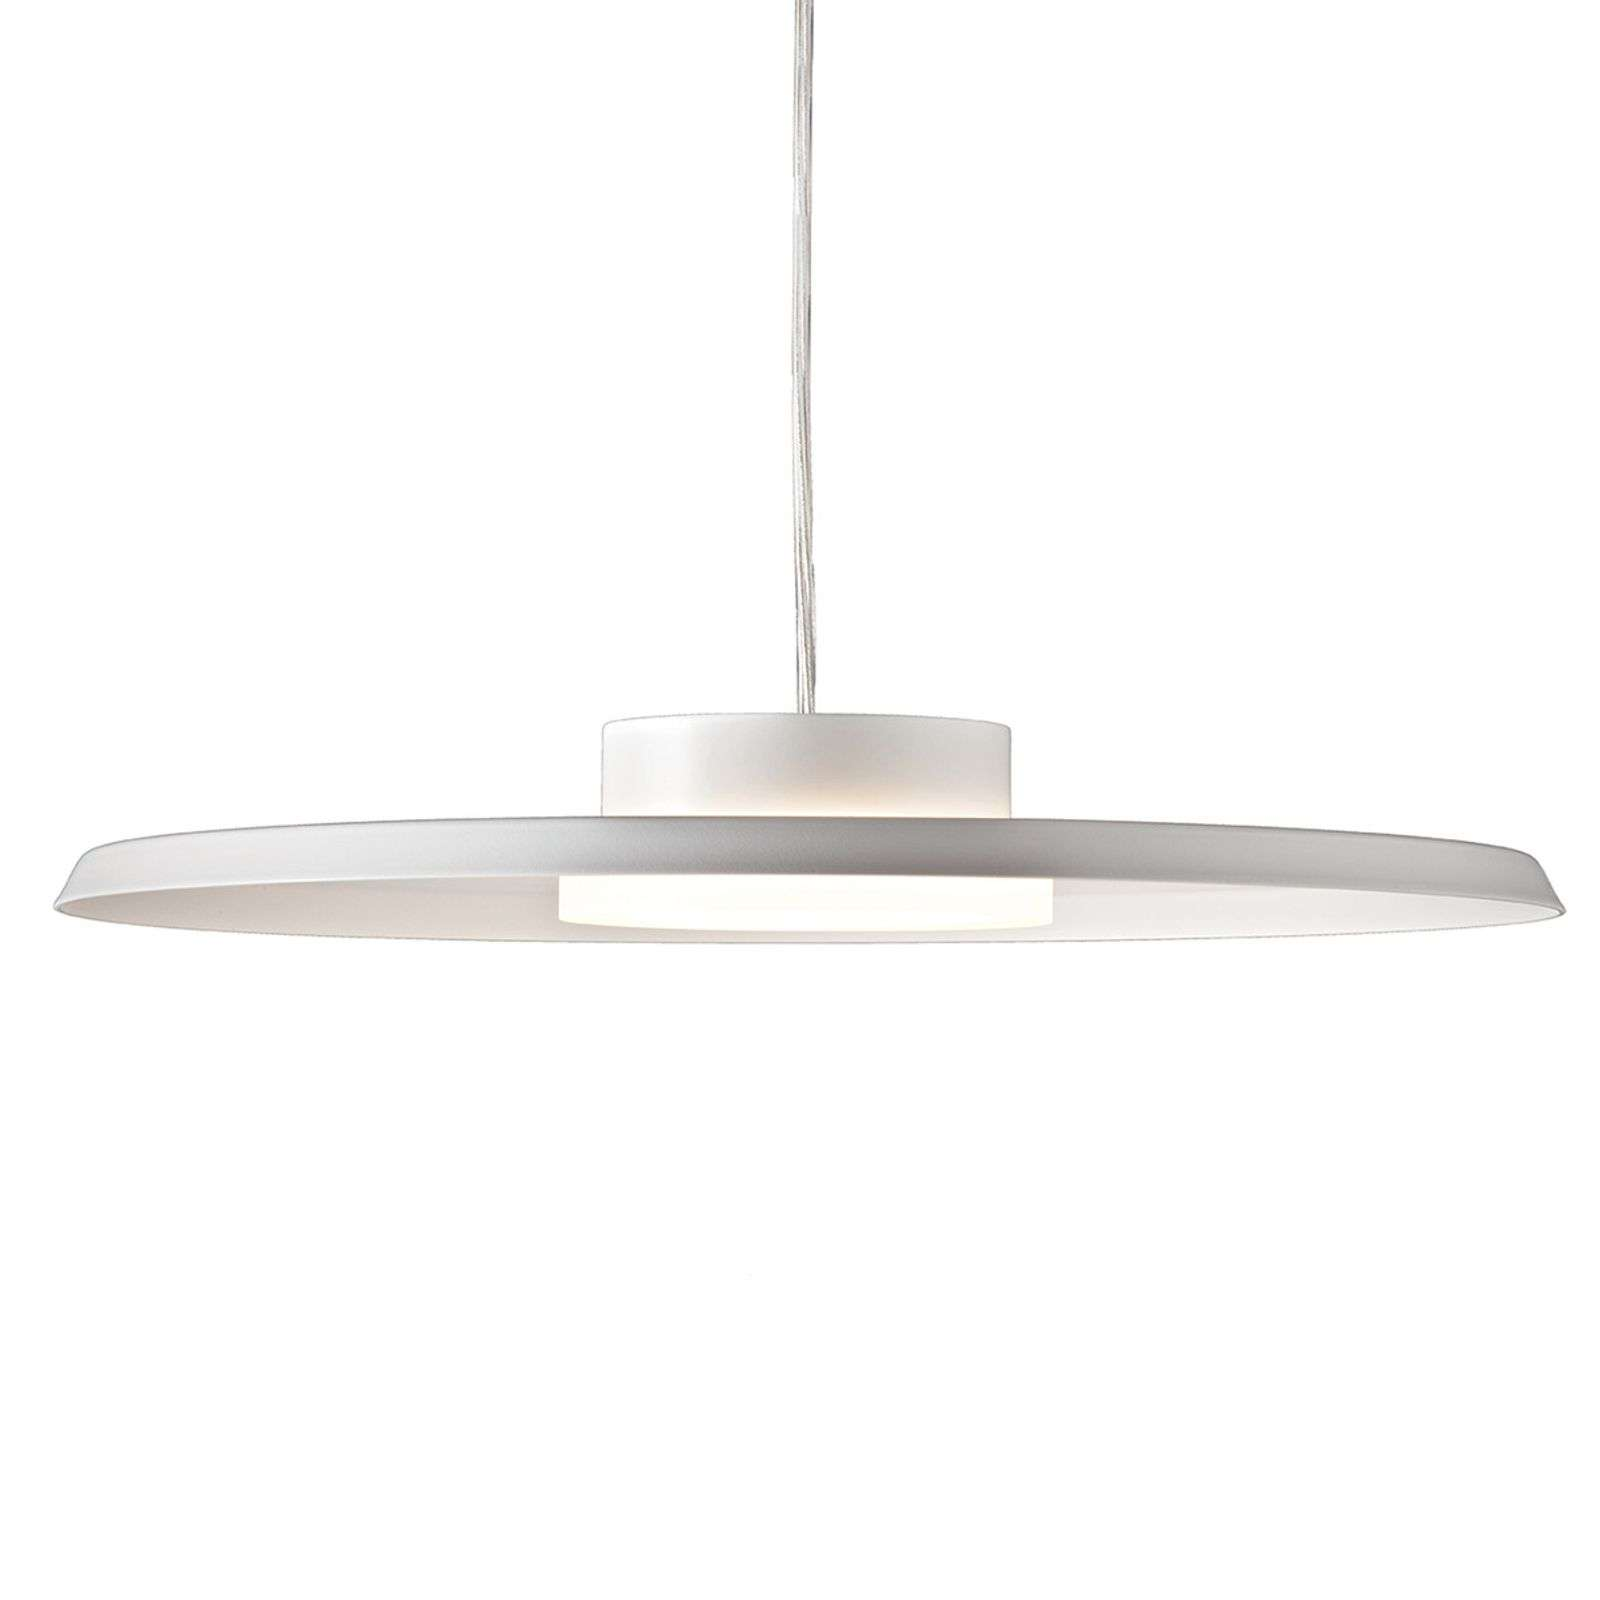 Suspension LED 360, blanc